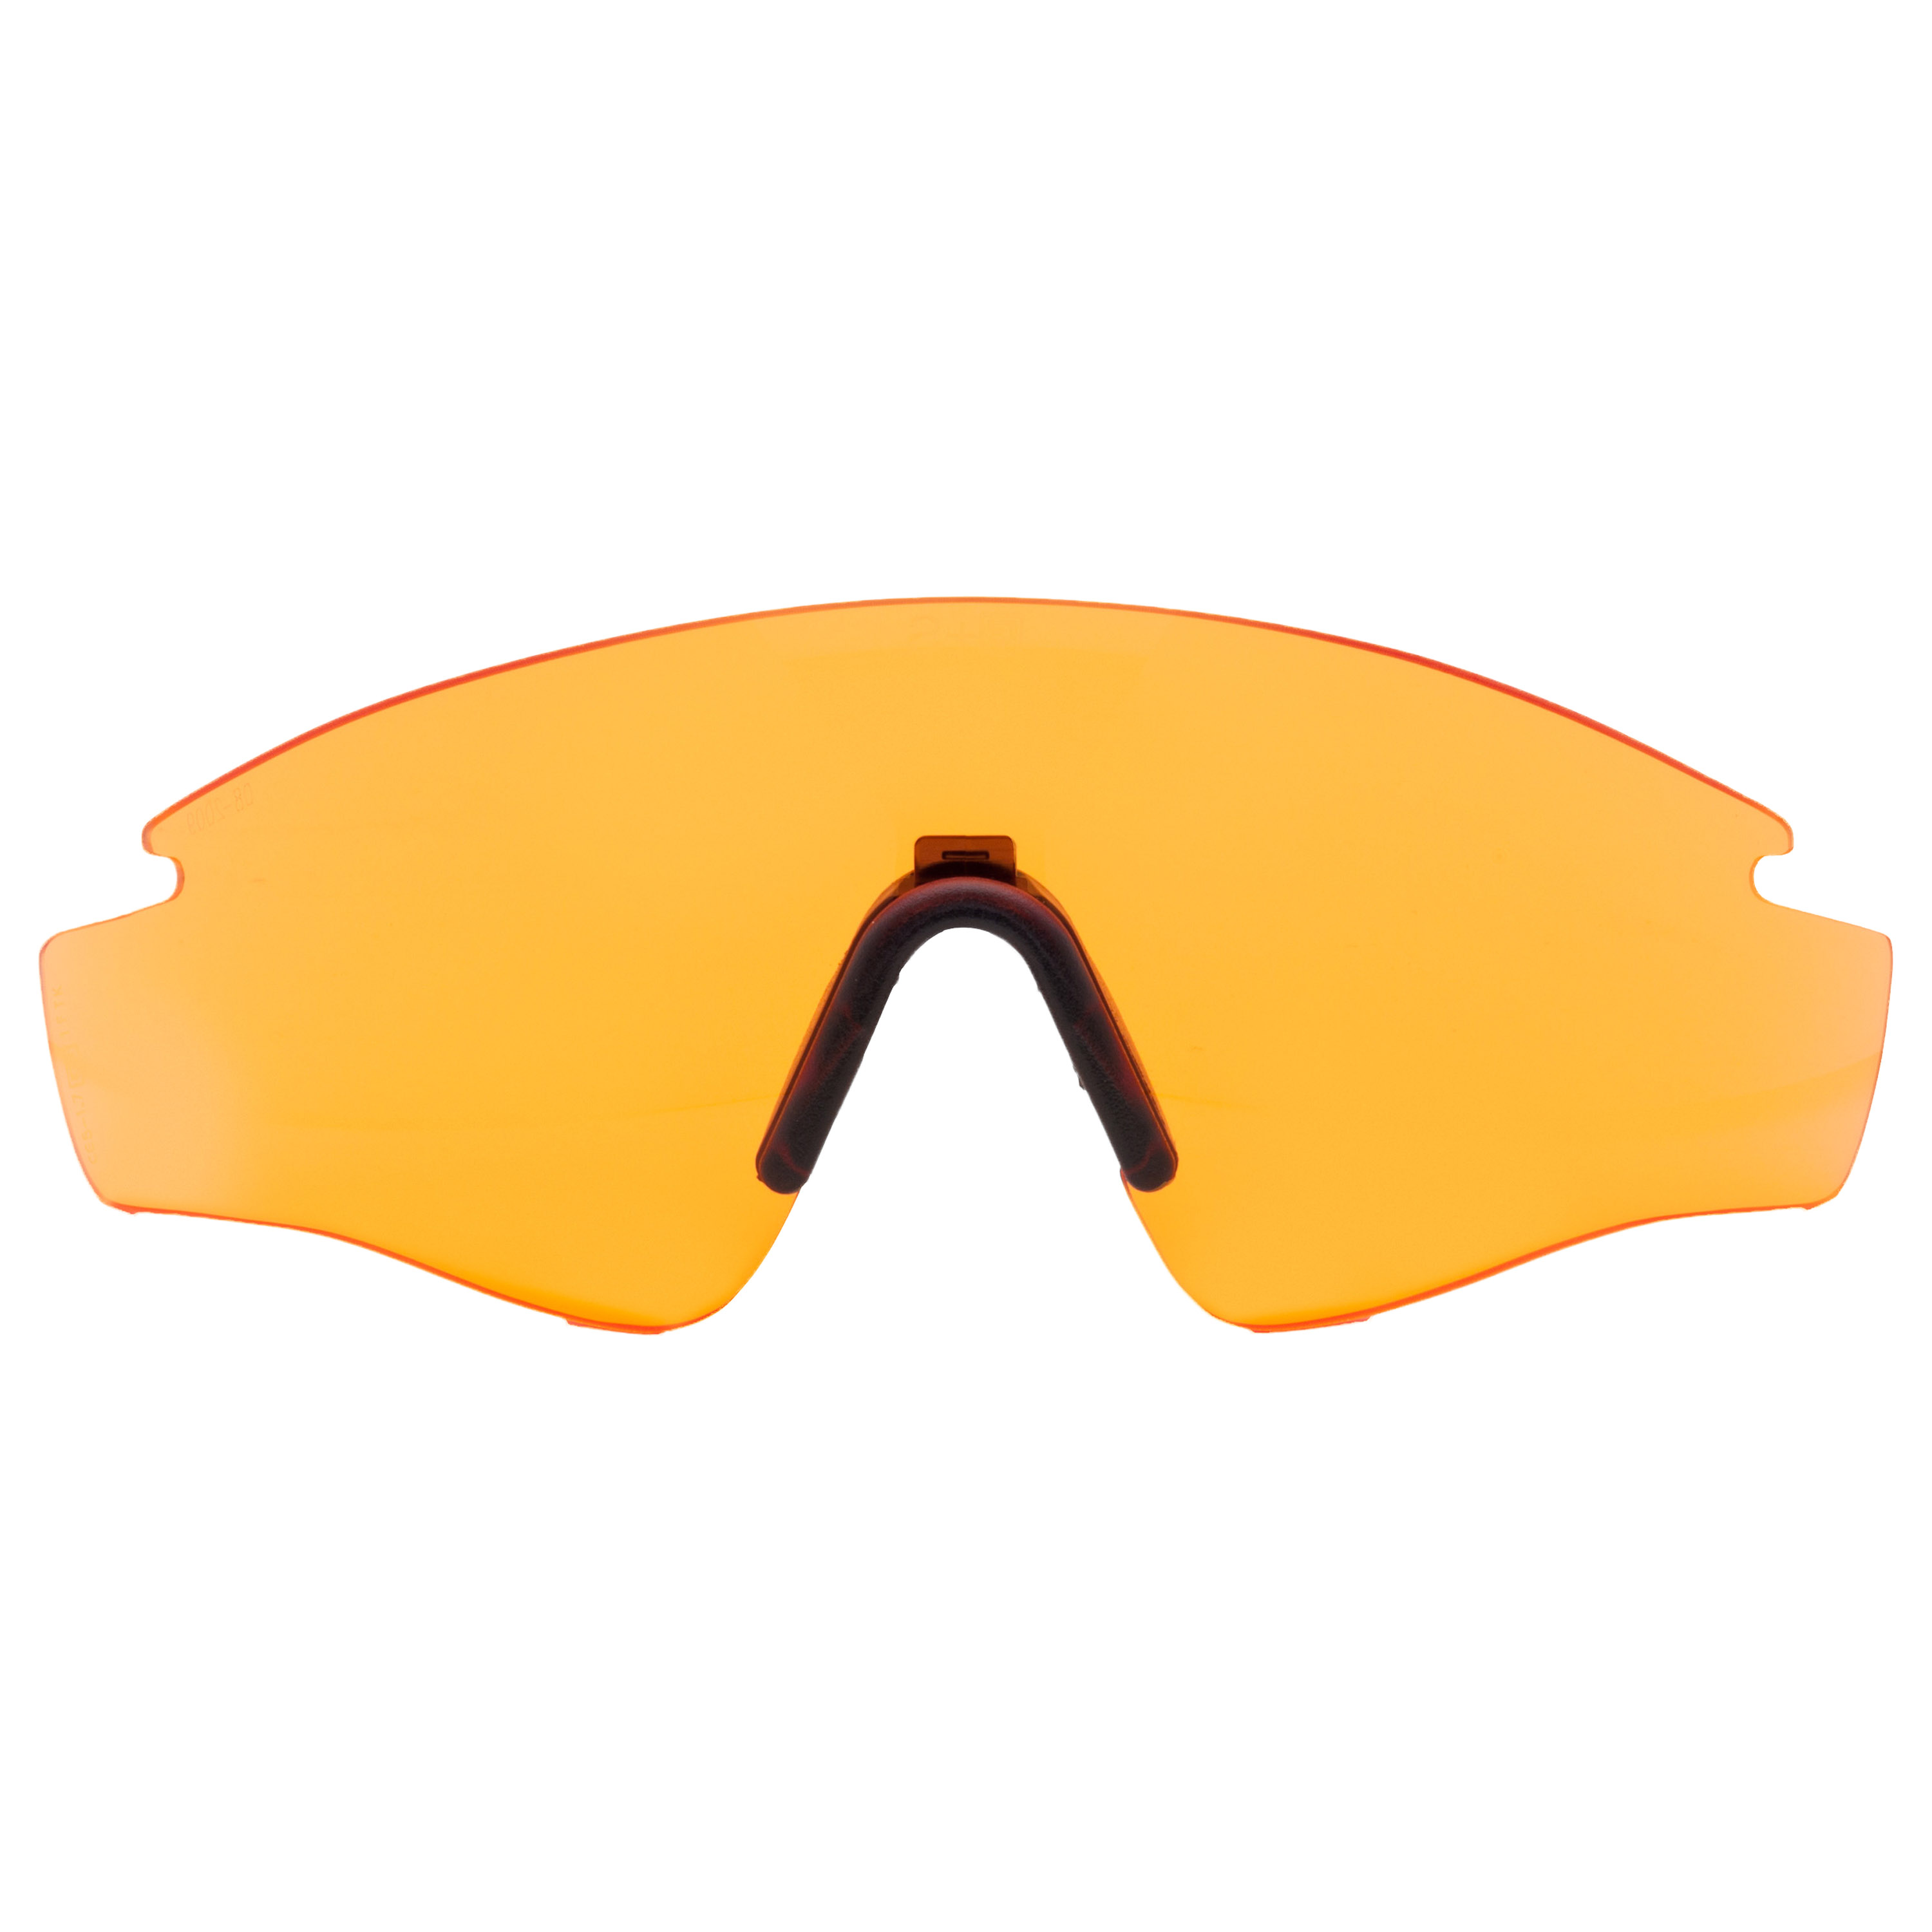 Replacement Lens Revision Sawfly Max-Wrap Small orange